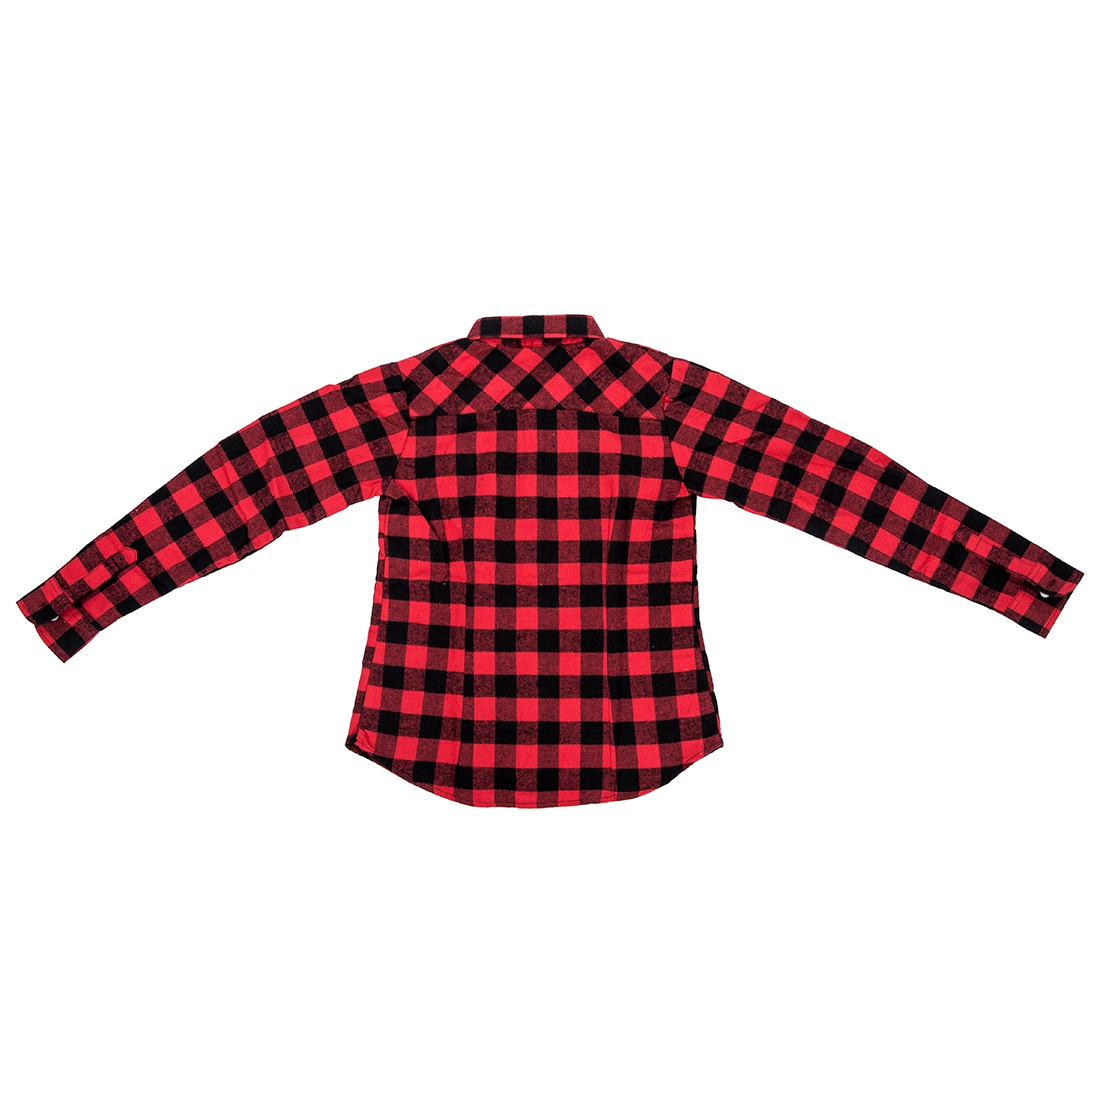 Womens shirt flannel shirts tops blouse red black m shd1 Womens red plaid shirts blouses